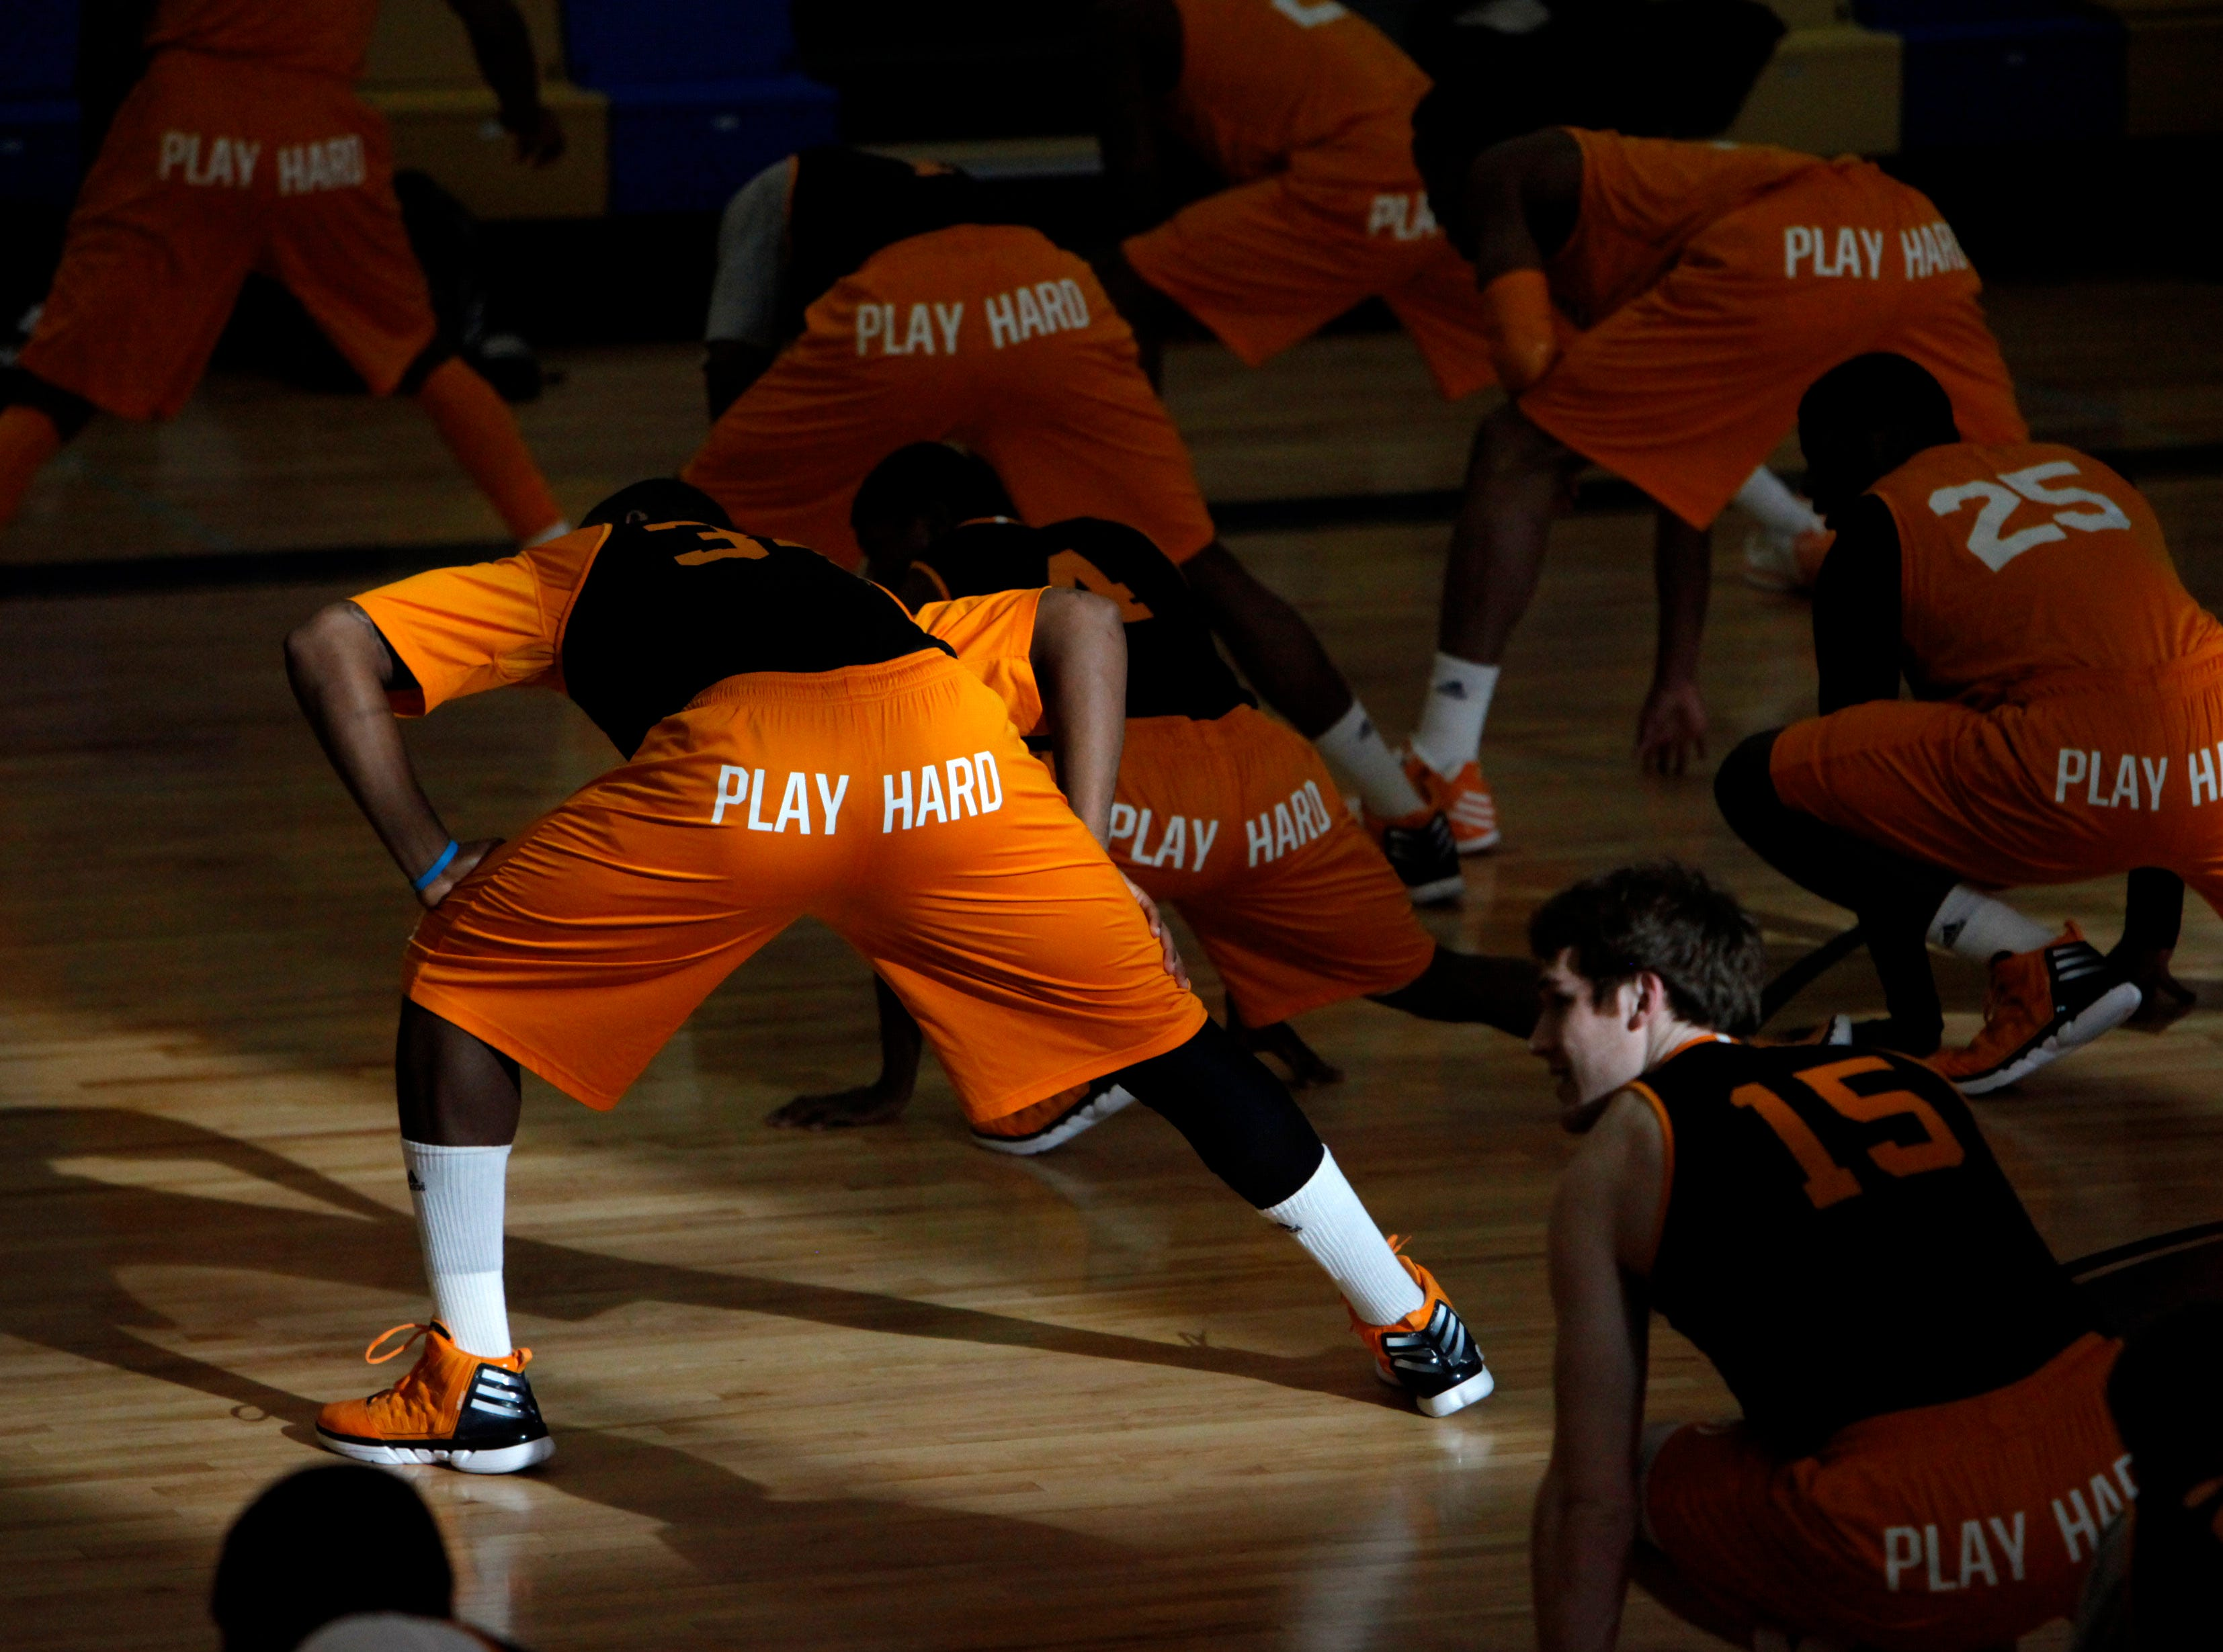 The Tennessee Volunteers men's basketball team stretches prior to practice at Holy Cross School in New Orleans, La., Thursday, March 8, 2012. Tennessee will take on the winner of the Ole Miss and Auburn game on Friday.